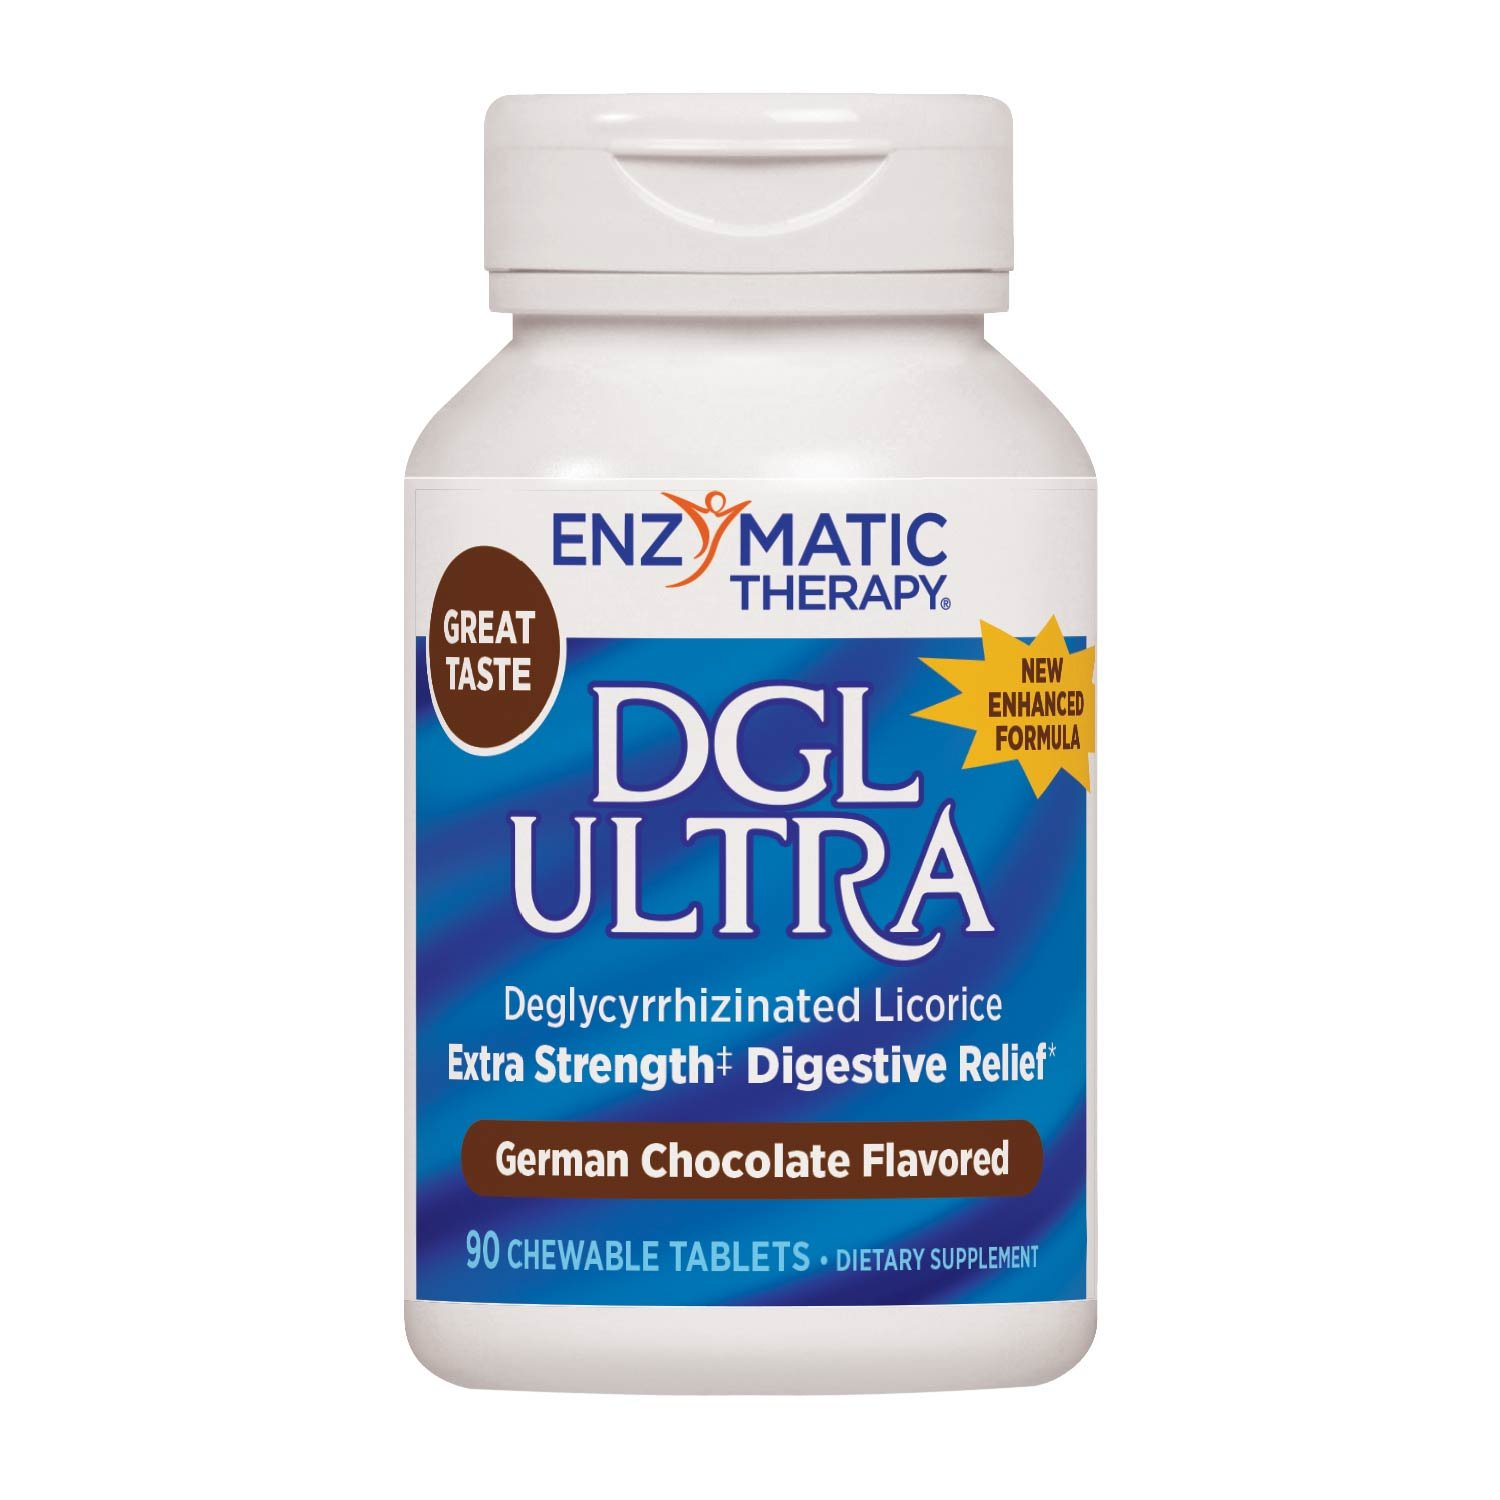 DGL ULTRA: Ultra-Strength Deglycyrrhizinated Licorice,  10:1 Deglycyrrhizinated Licorice, German Chocolate Flavor,  Chewable Tablets, Gluten-Free, 90 Count